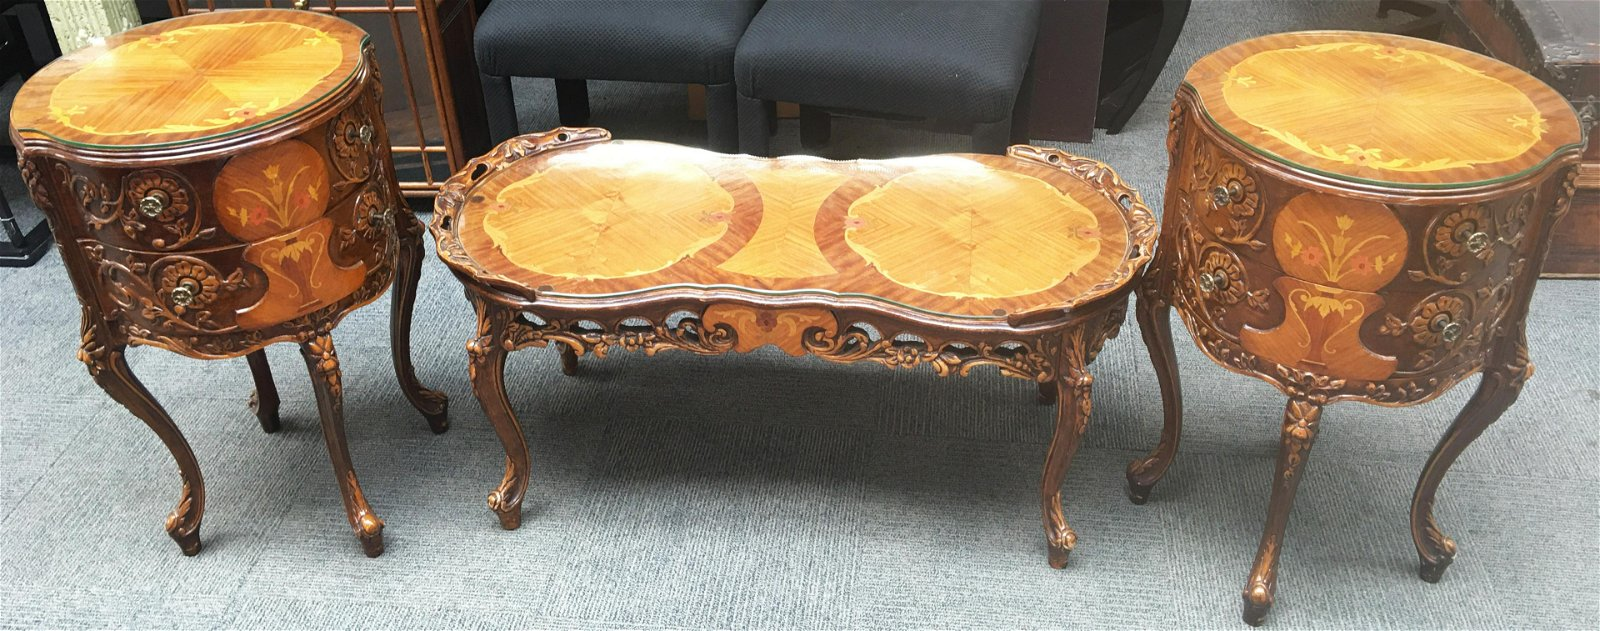 3 Pc. French-Carved Coffee Table & End Table Set.